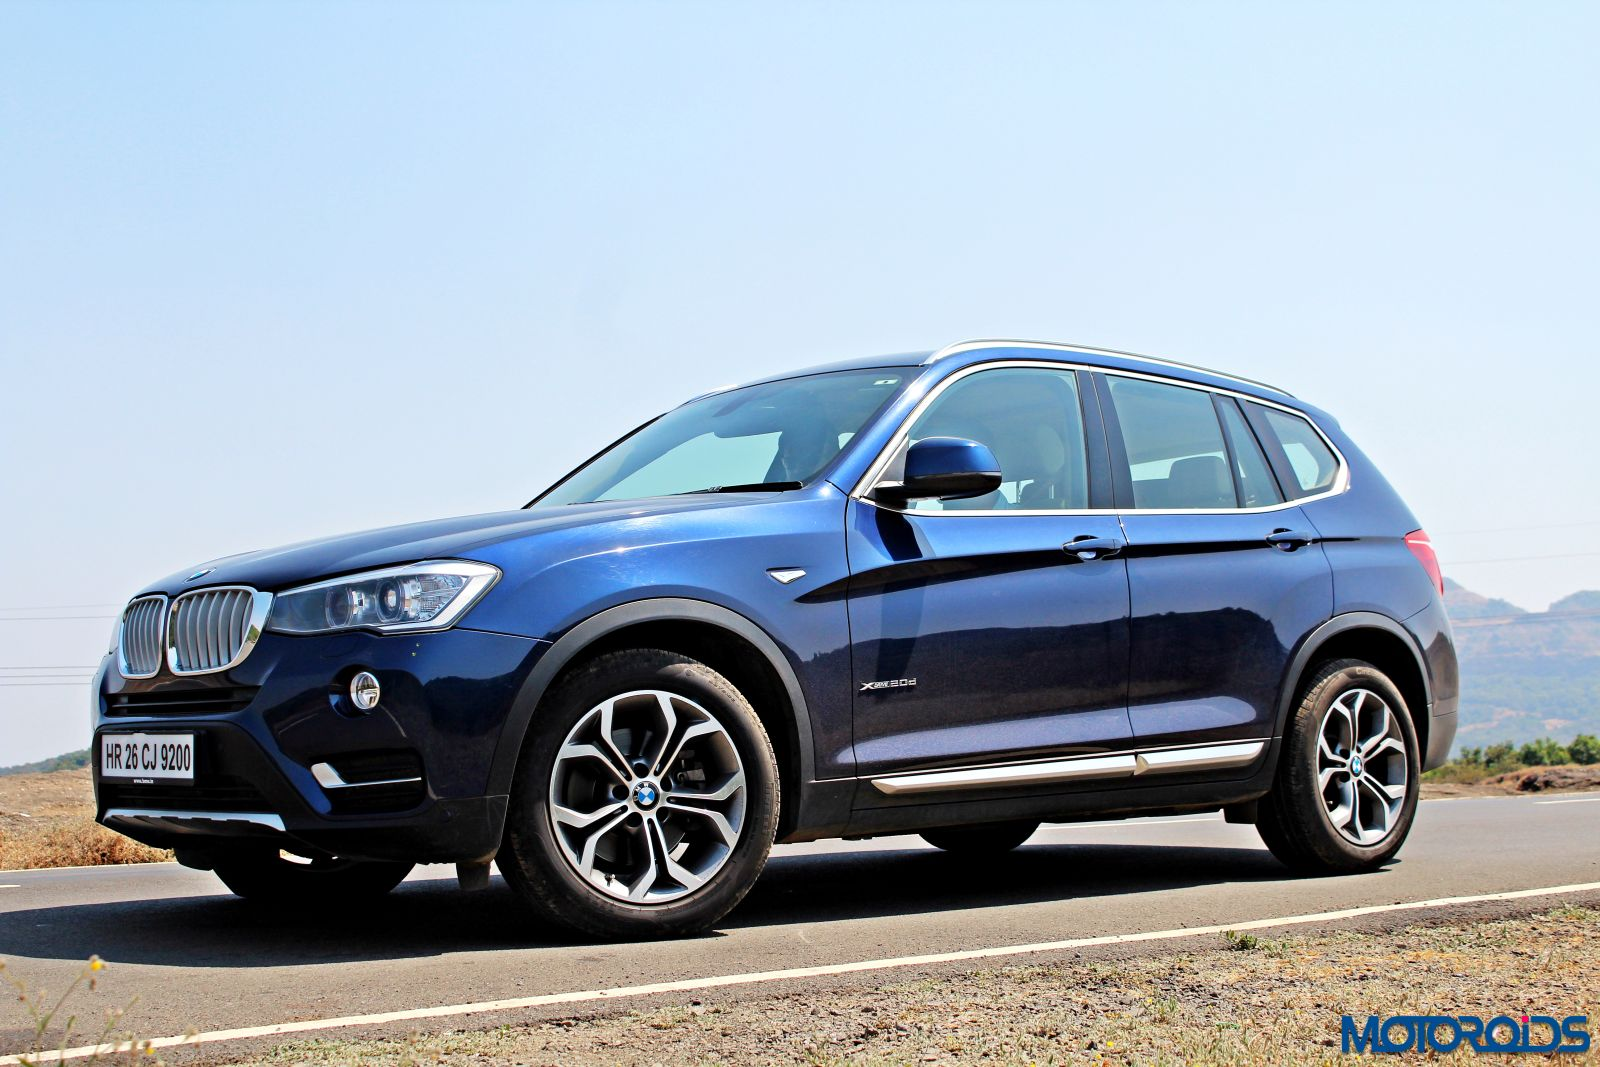 Bmw all cars price in india 2015 9